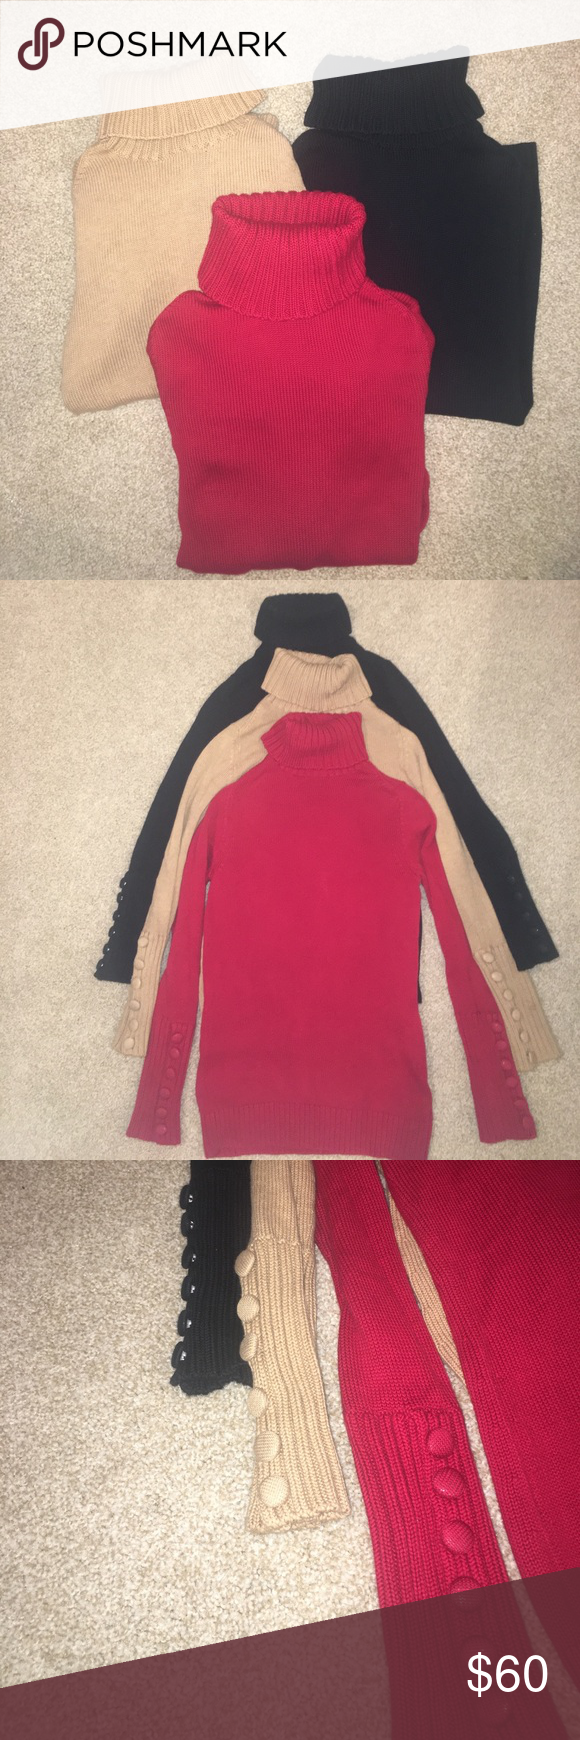 Banana Republic Turtleneck Sweaters Size Small Lot of three turtlenecks, each worn once and in great condition.  No signs of wear.  The bottom of the arms have six buttons on each sides of the sleeves.  There is a small hole in the neck of the brown sweater (bought like this, see pic). Banana Republic Sweaters Cowl & Turtlenecks